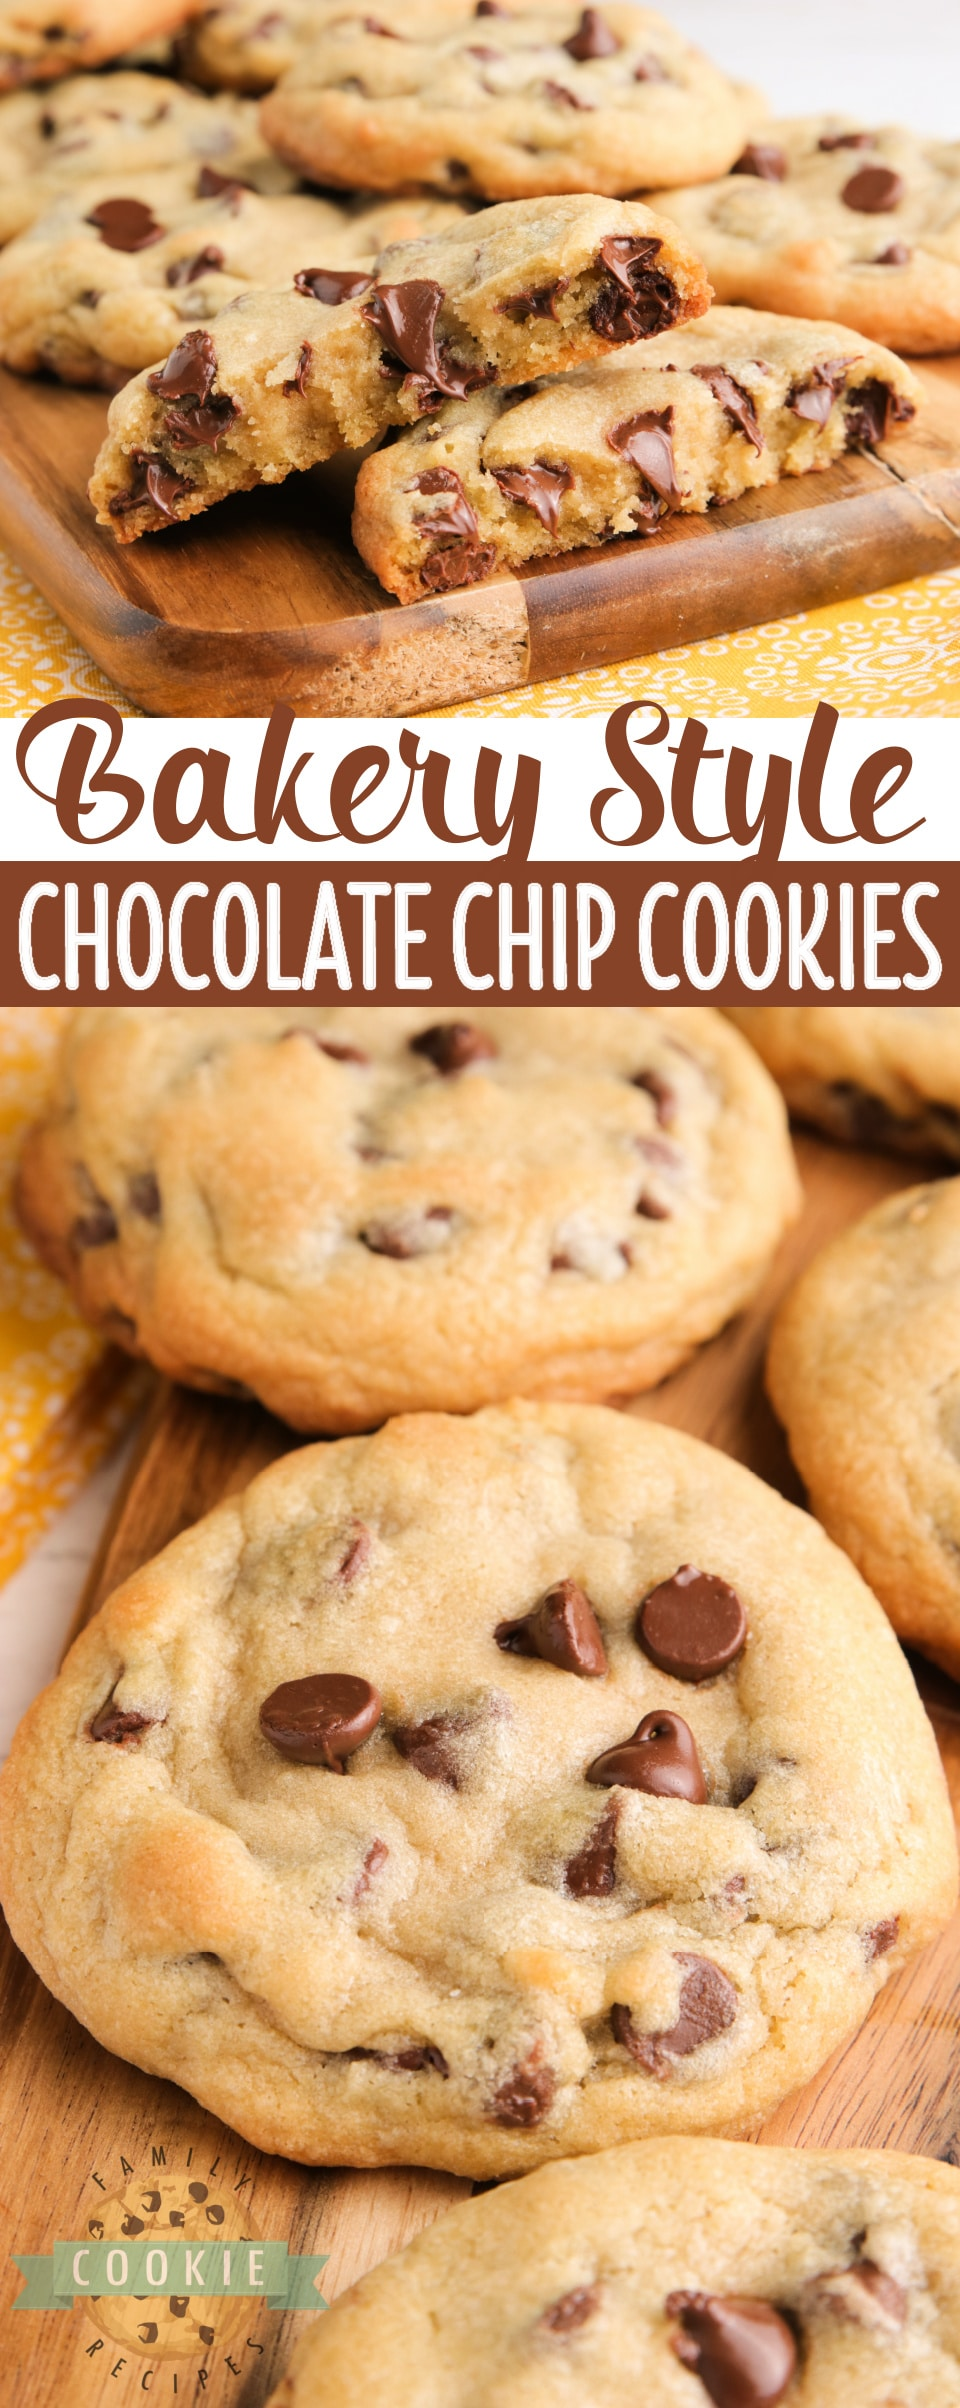 Bakery Style Chocolate Chip Cookies are large, crisp on the very outside and soft in the middle. The perfect chocolate chip cookie recipe that you've been looking for all your life! via @familycookierecipes